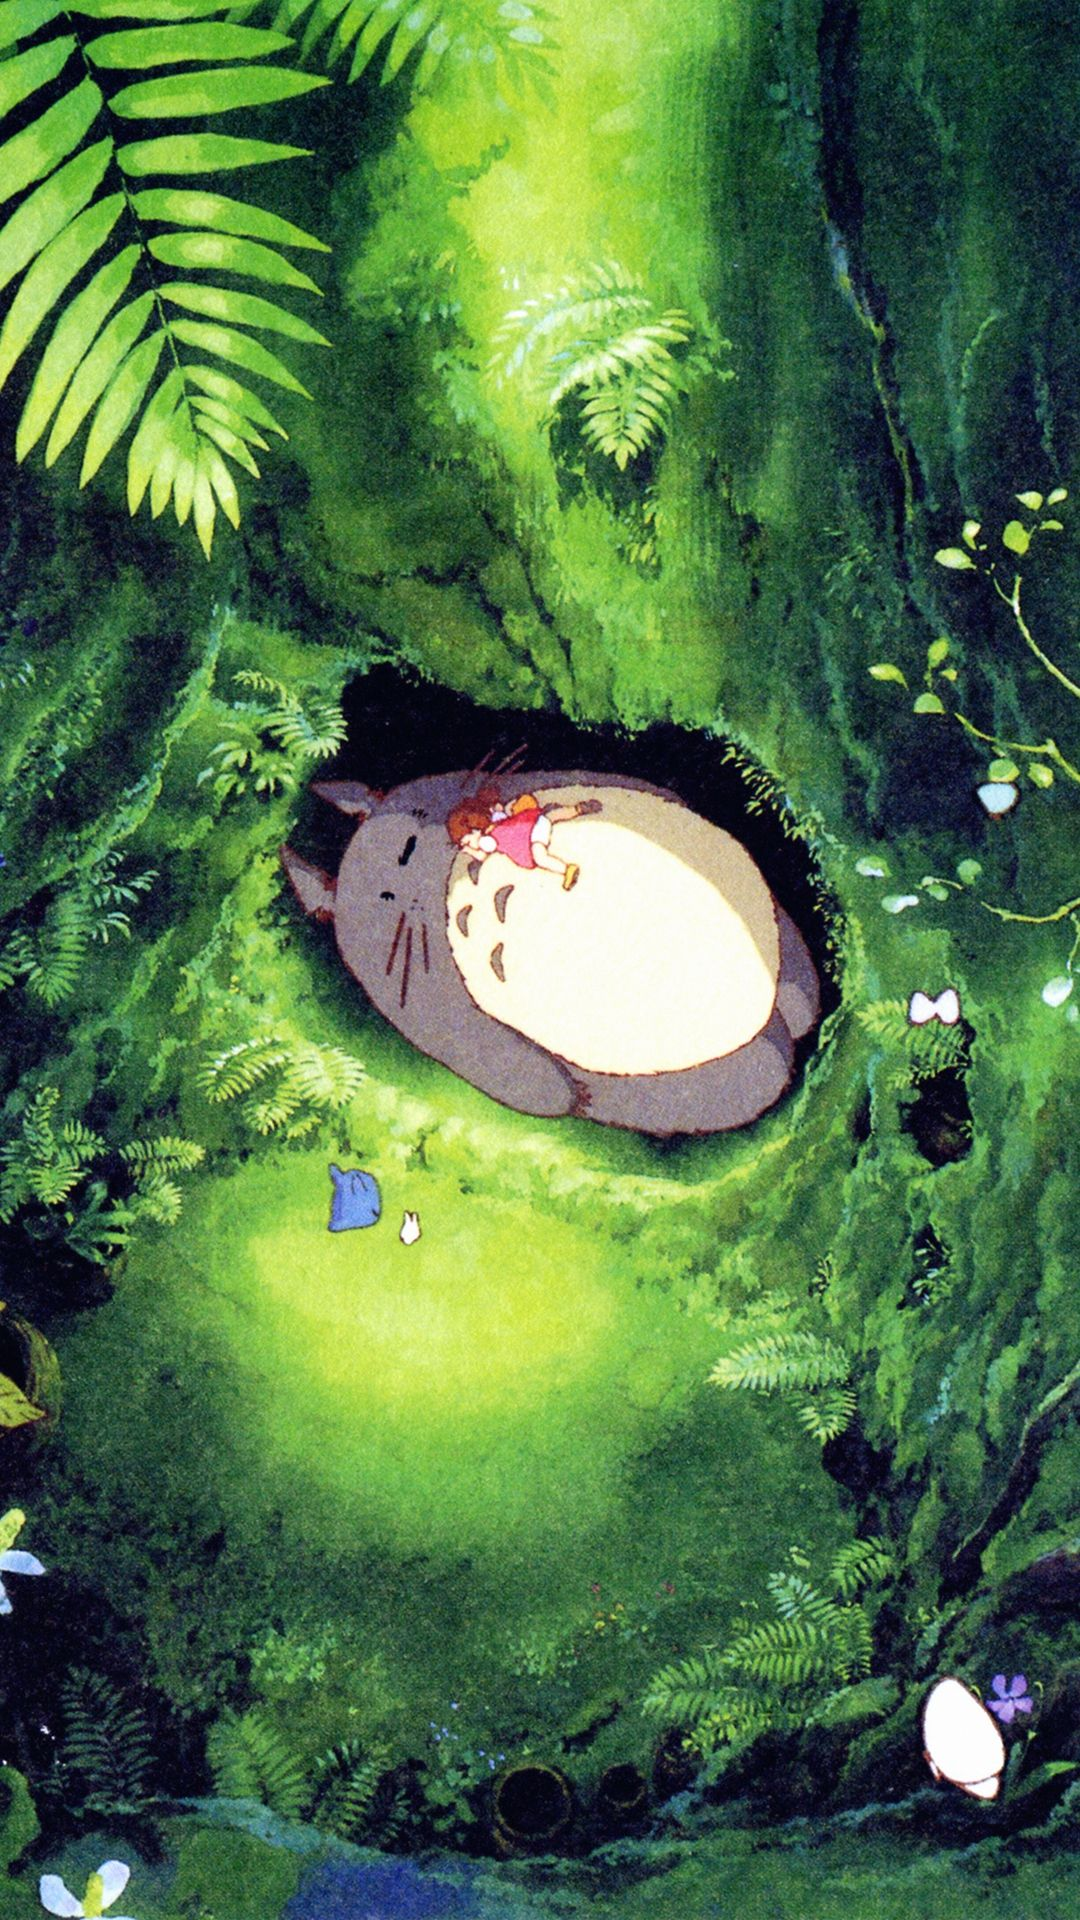 Japan Totoro Art Green Anime Illustration iPhone 6